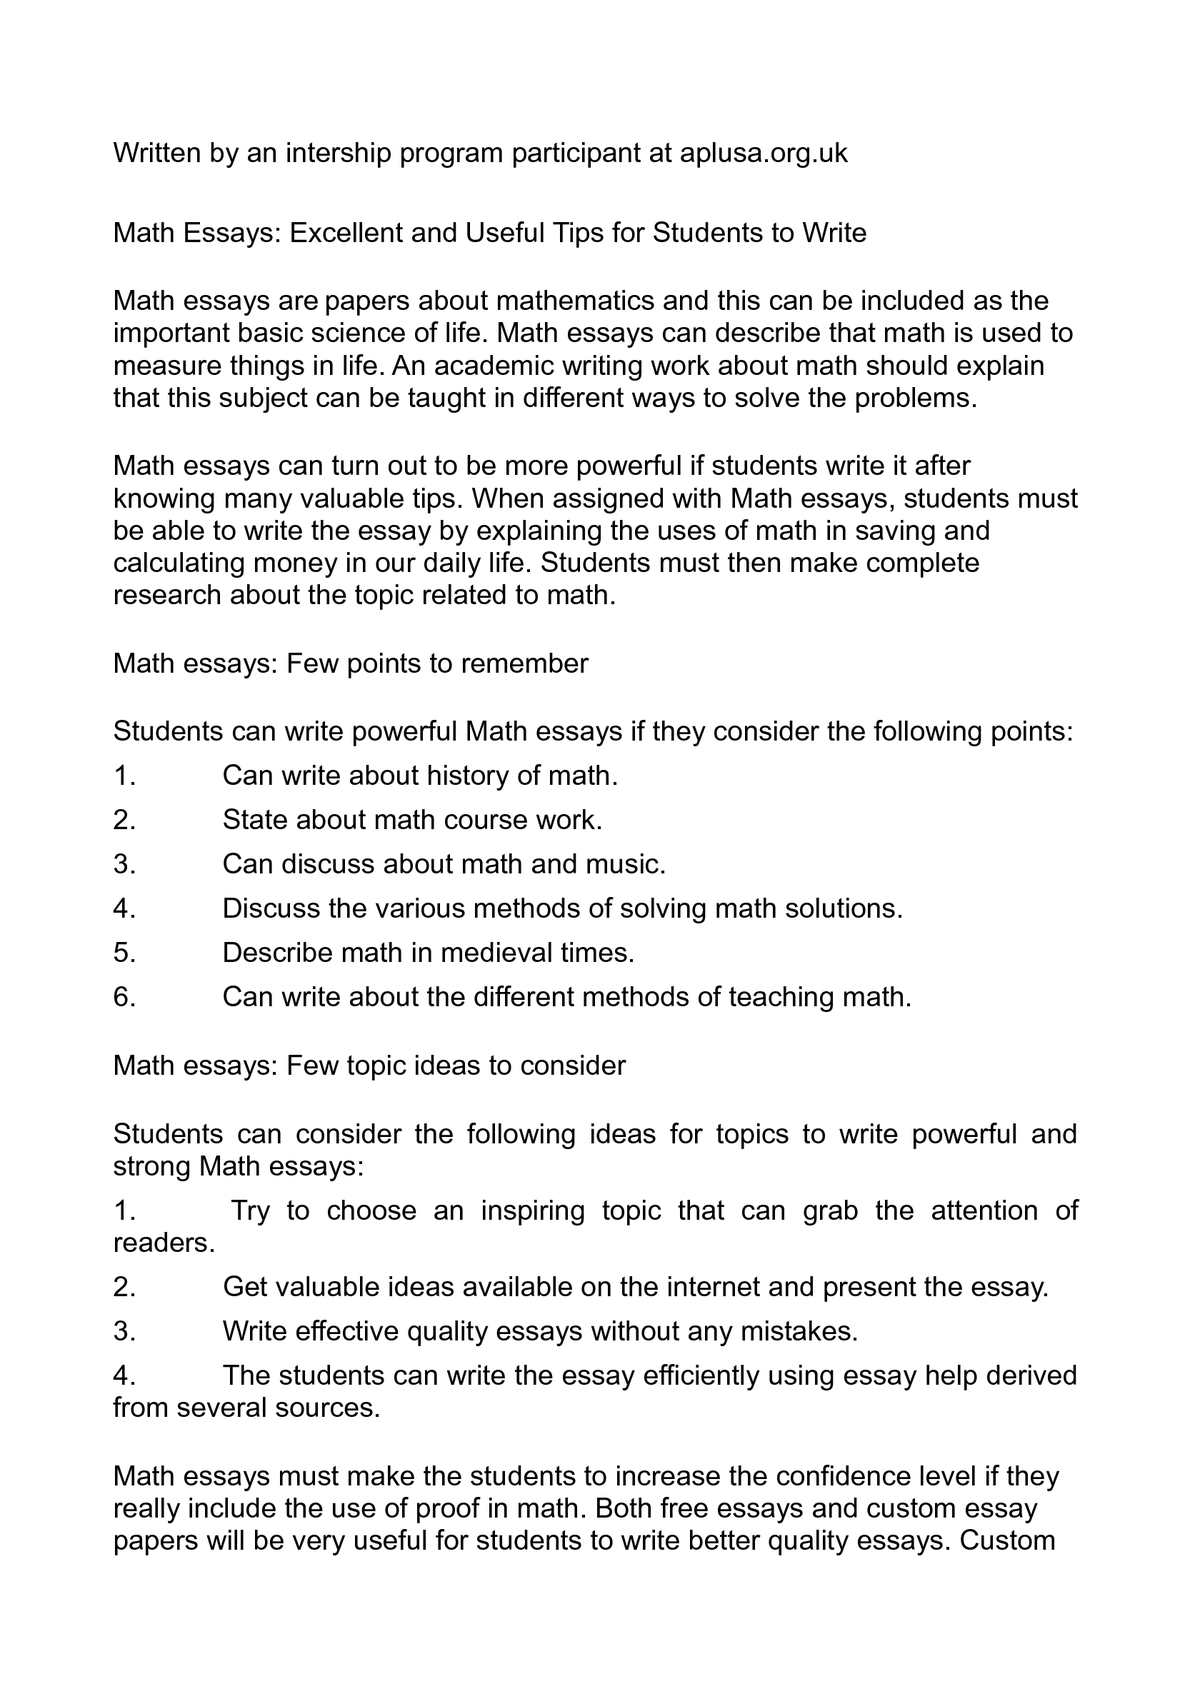 Purpose Of A Narrative Essay Math Essays Excellent And Useful Tips For Students To Write Determination Essay also Visual Communication Essay Essays On Math Math Ib Sl Int Ass Pascal S Triangle International  Essays By Martin Luther King Jr